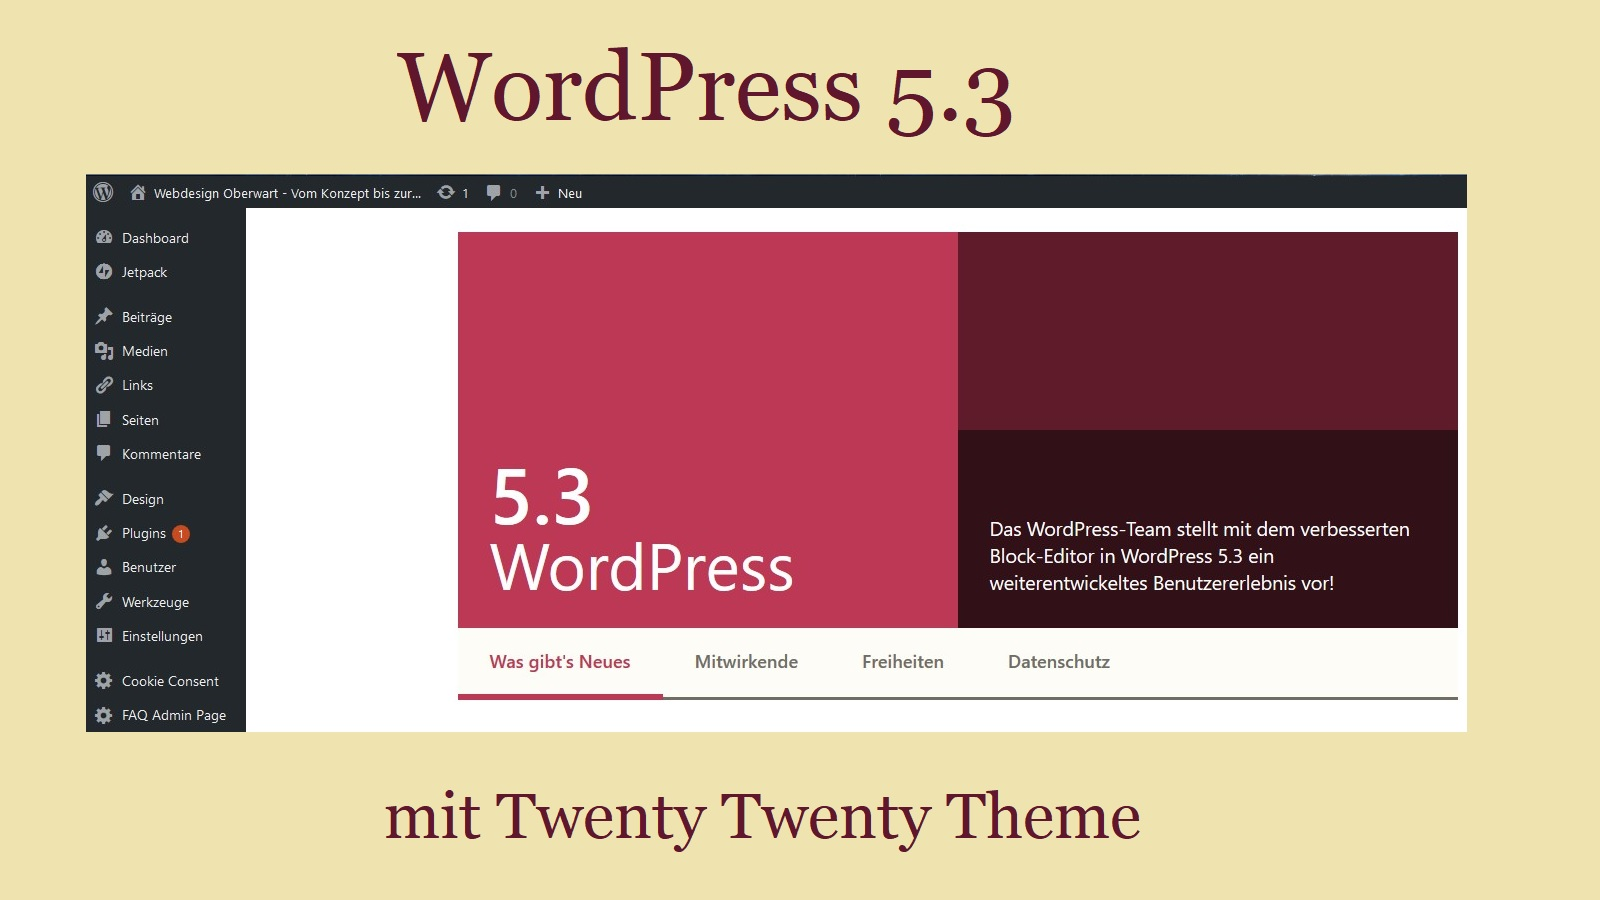 wordpress-5.3-mit-twenty-twenty